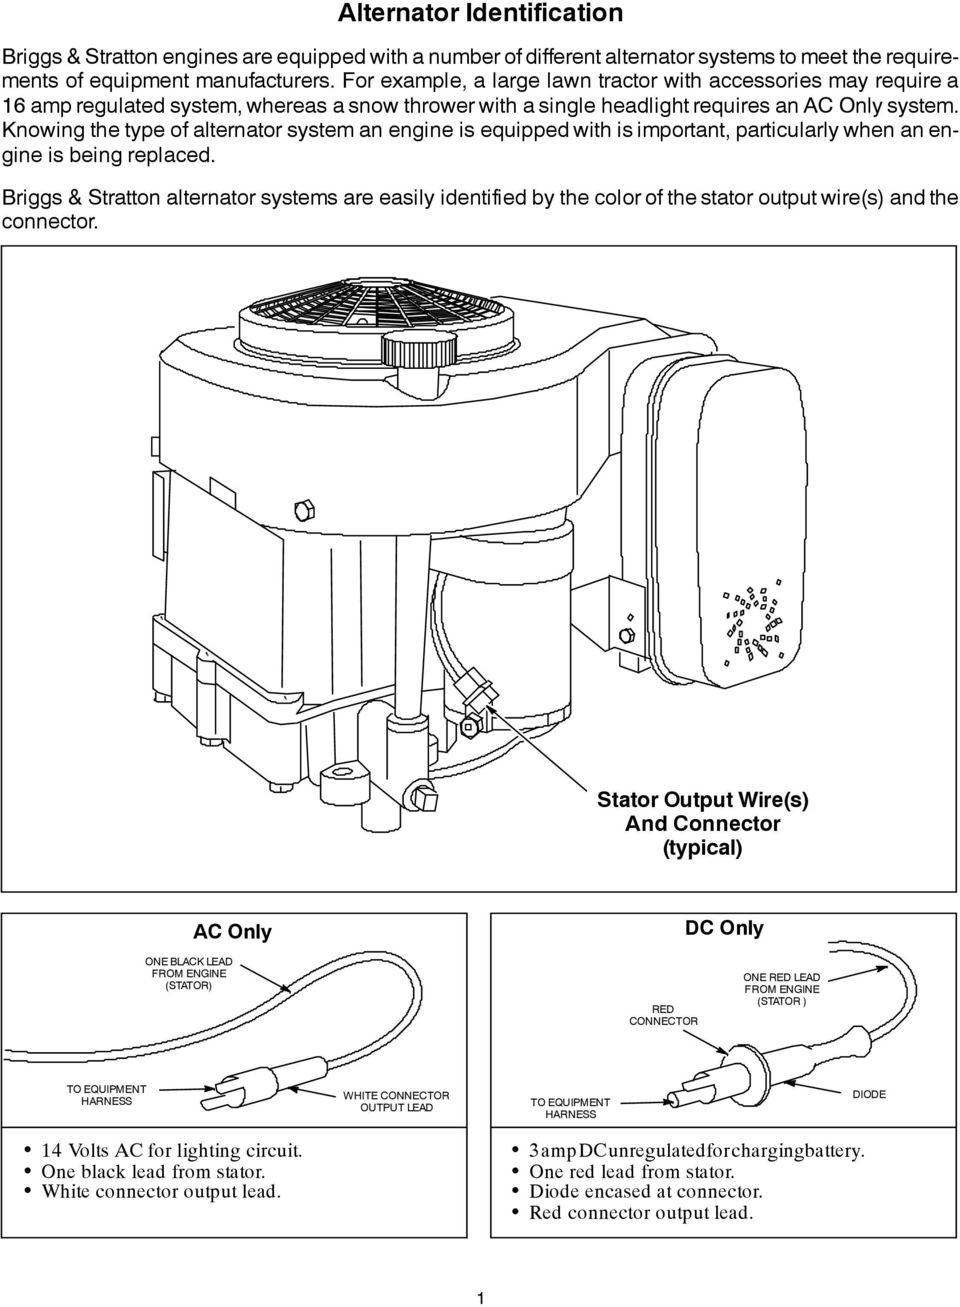 Alternator Identification Pdf Briggs Amp Stratton Wiring Diagram Knowing The Type Of System An Engine Is Equipped With Important Particularly When